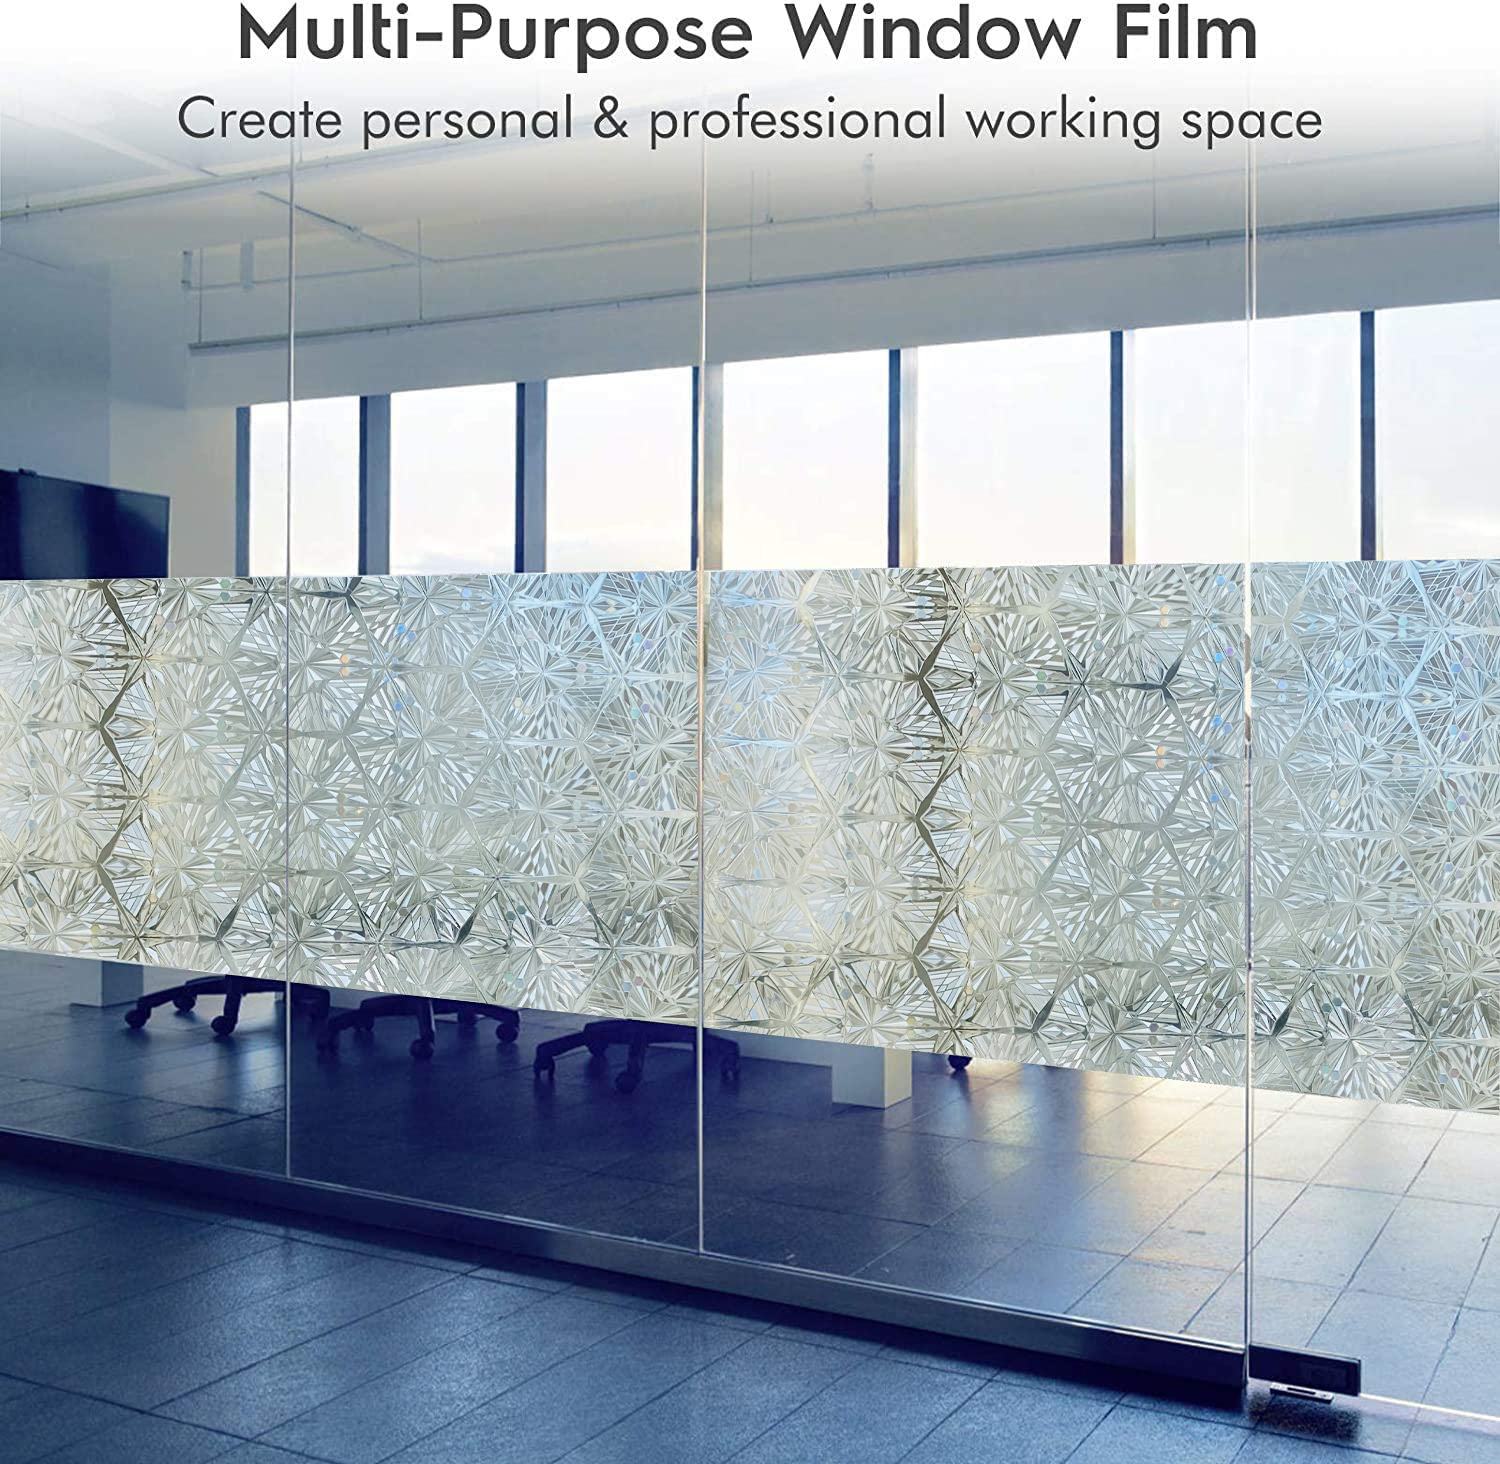 Privacy Stained Window Film Non-Adhesive Frosted Decorative Glass Film Static Cling Rainbow Window Stickers for Home 6